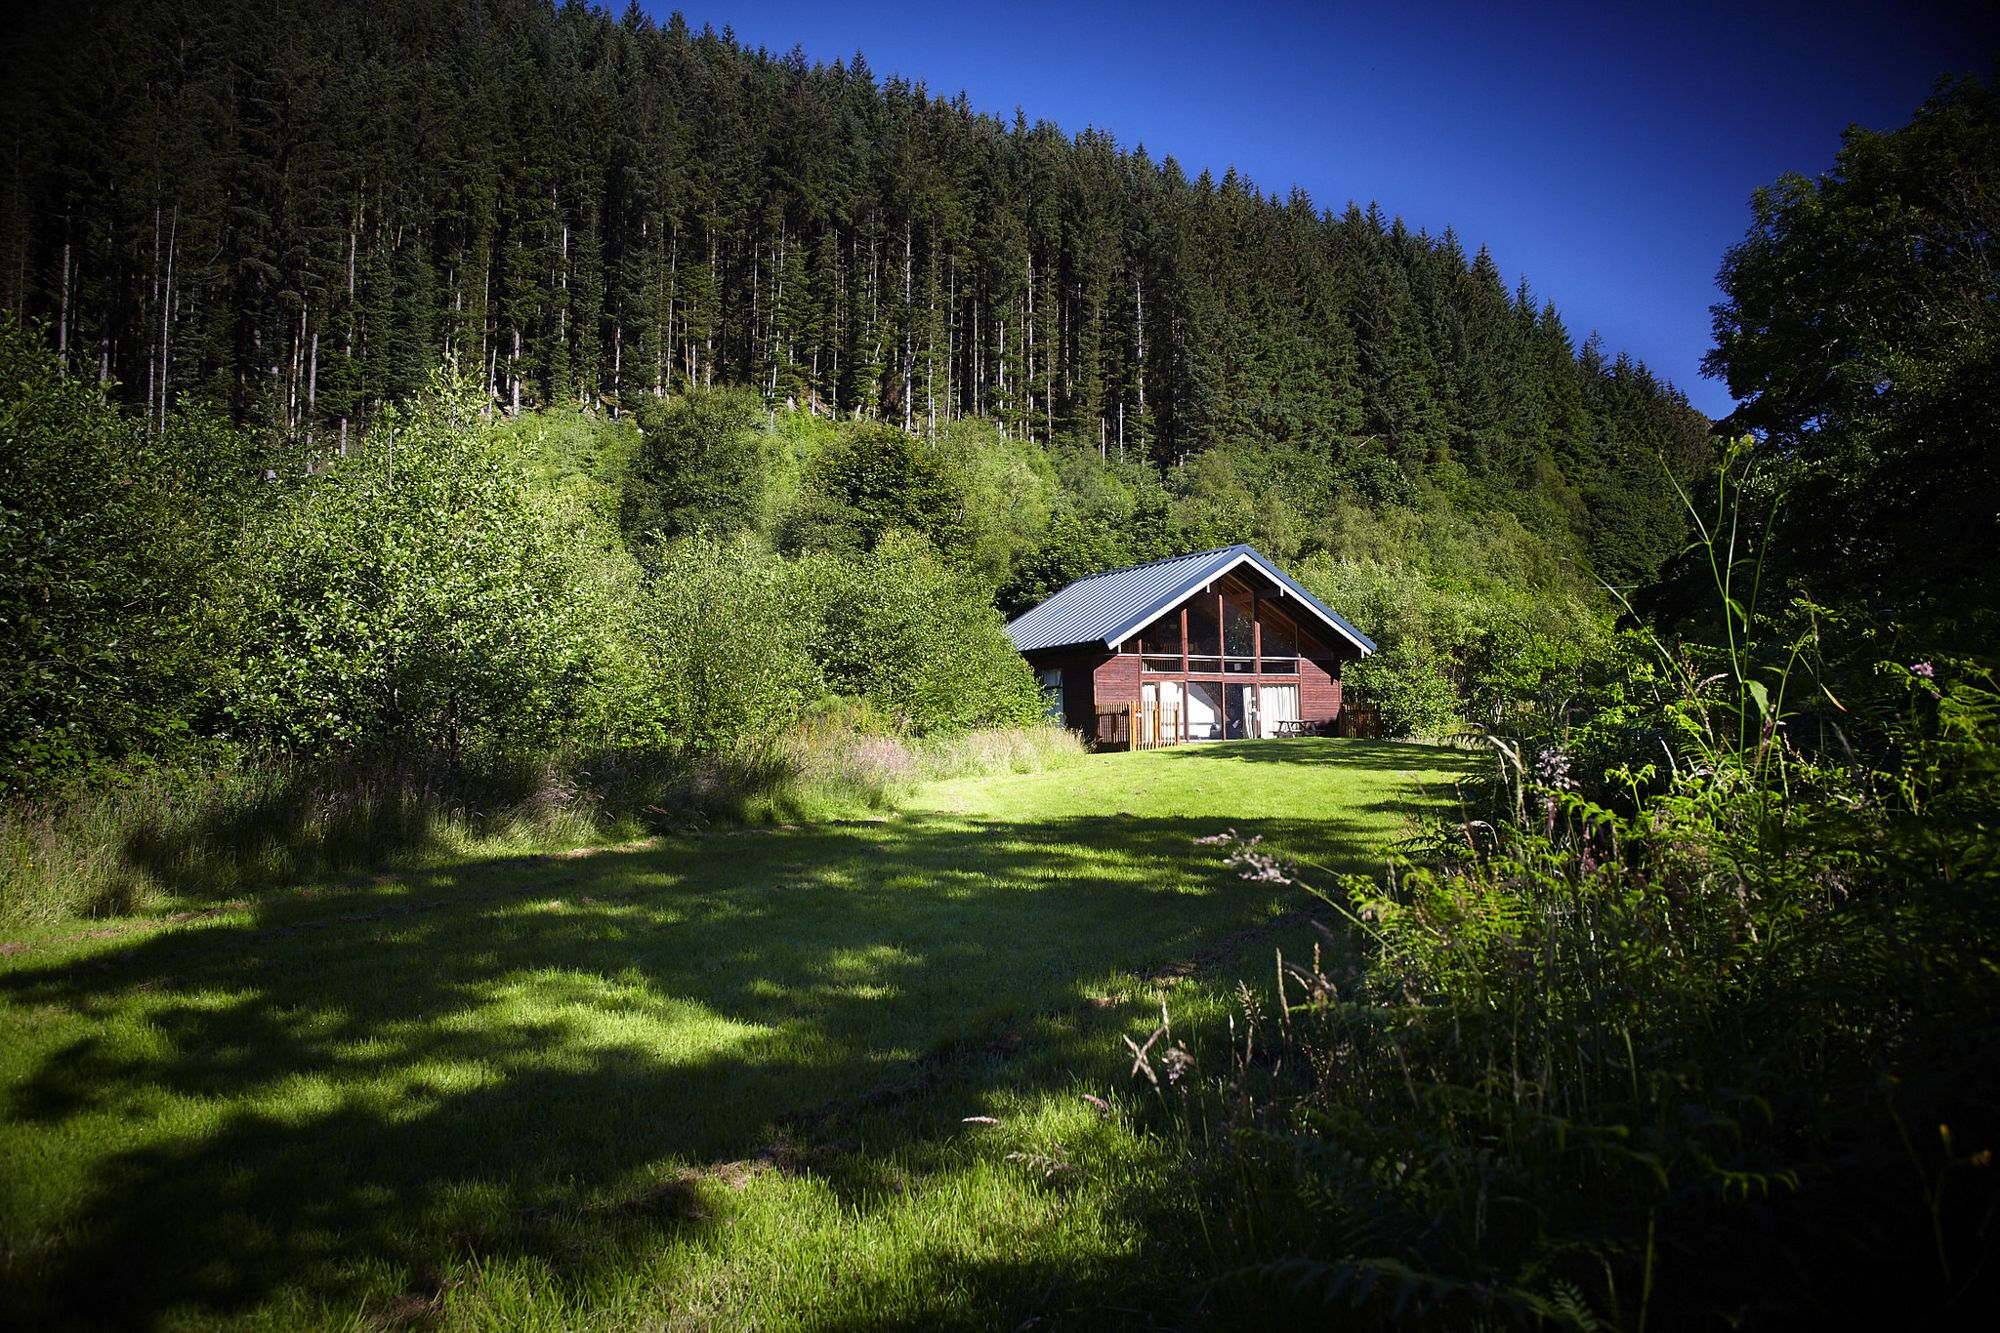 Self-Catering in Perthshire holidays at Cool Places